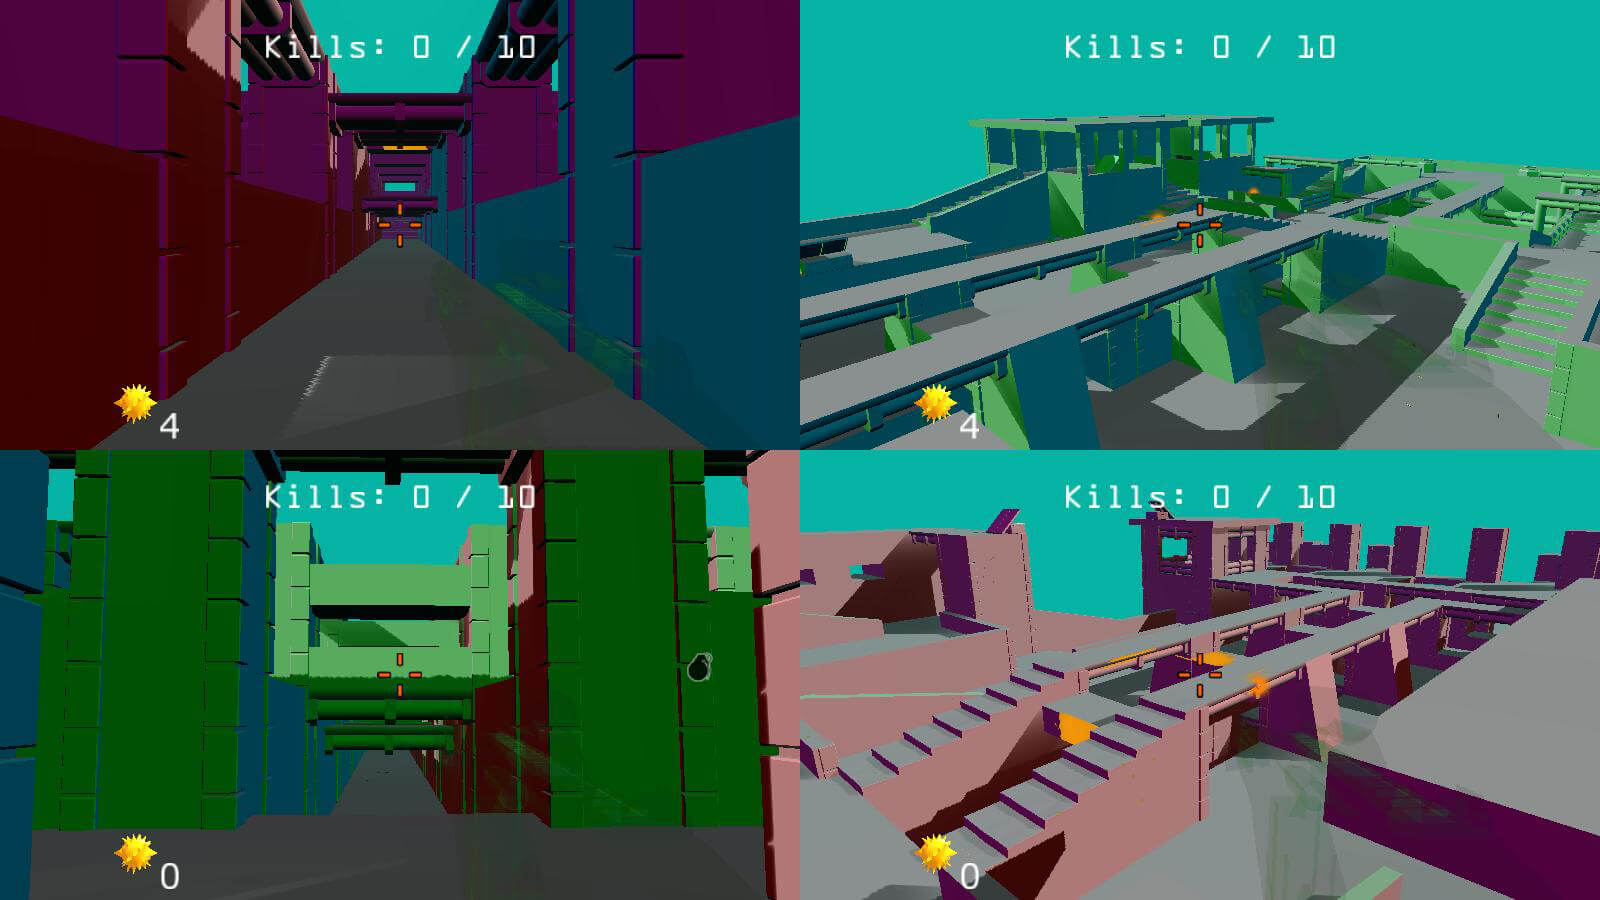 A four-player split-screen view of the abstract game level.